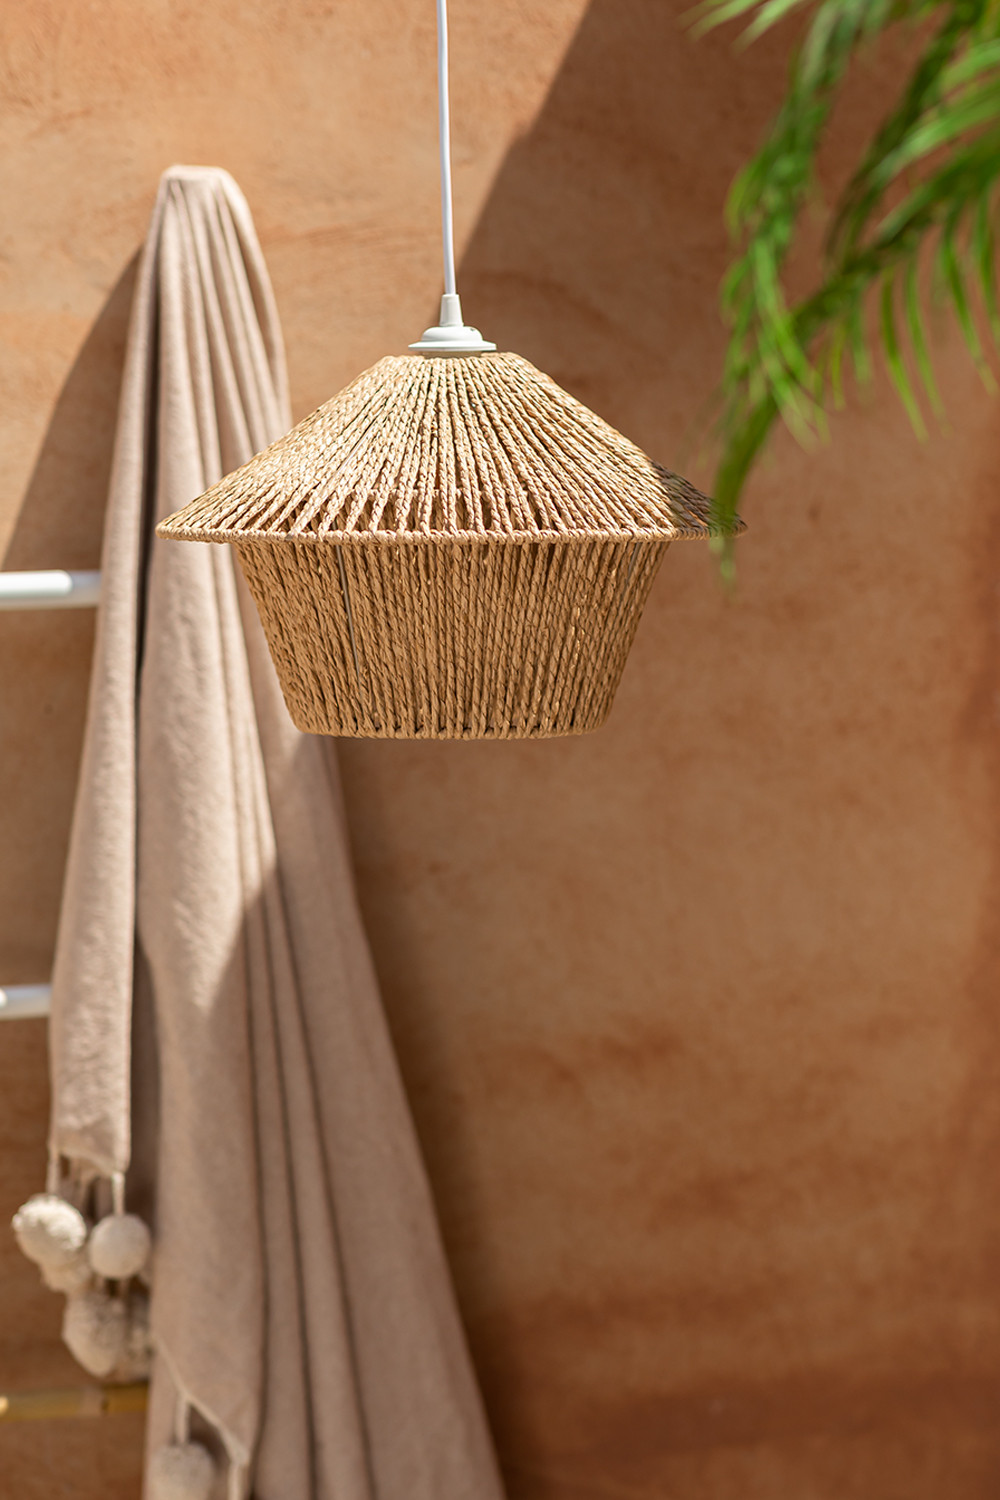 Jous Braided Paper Ceiling Lamp, gallery image 1